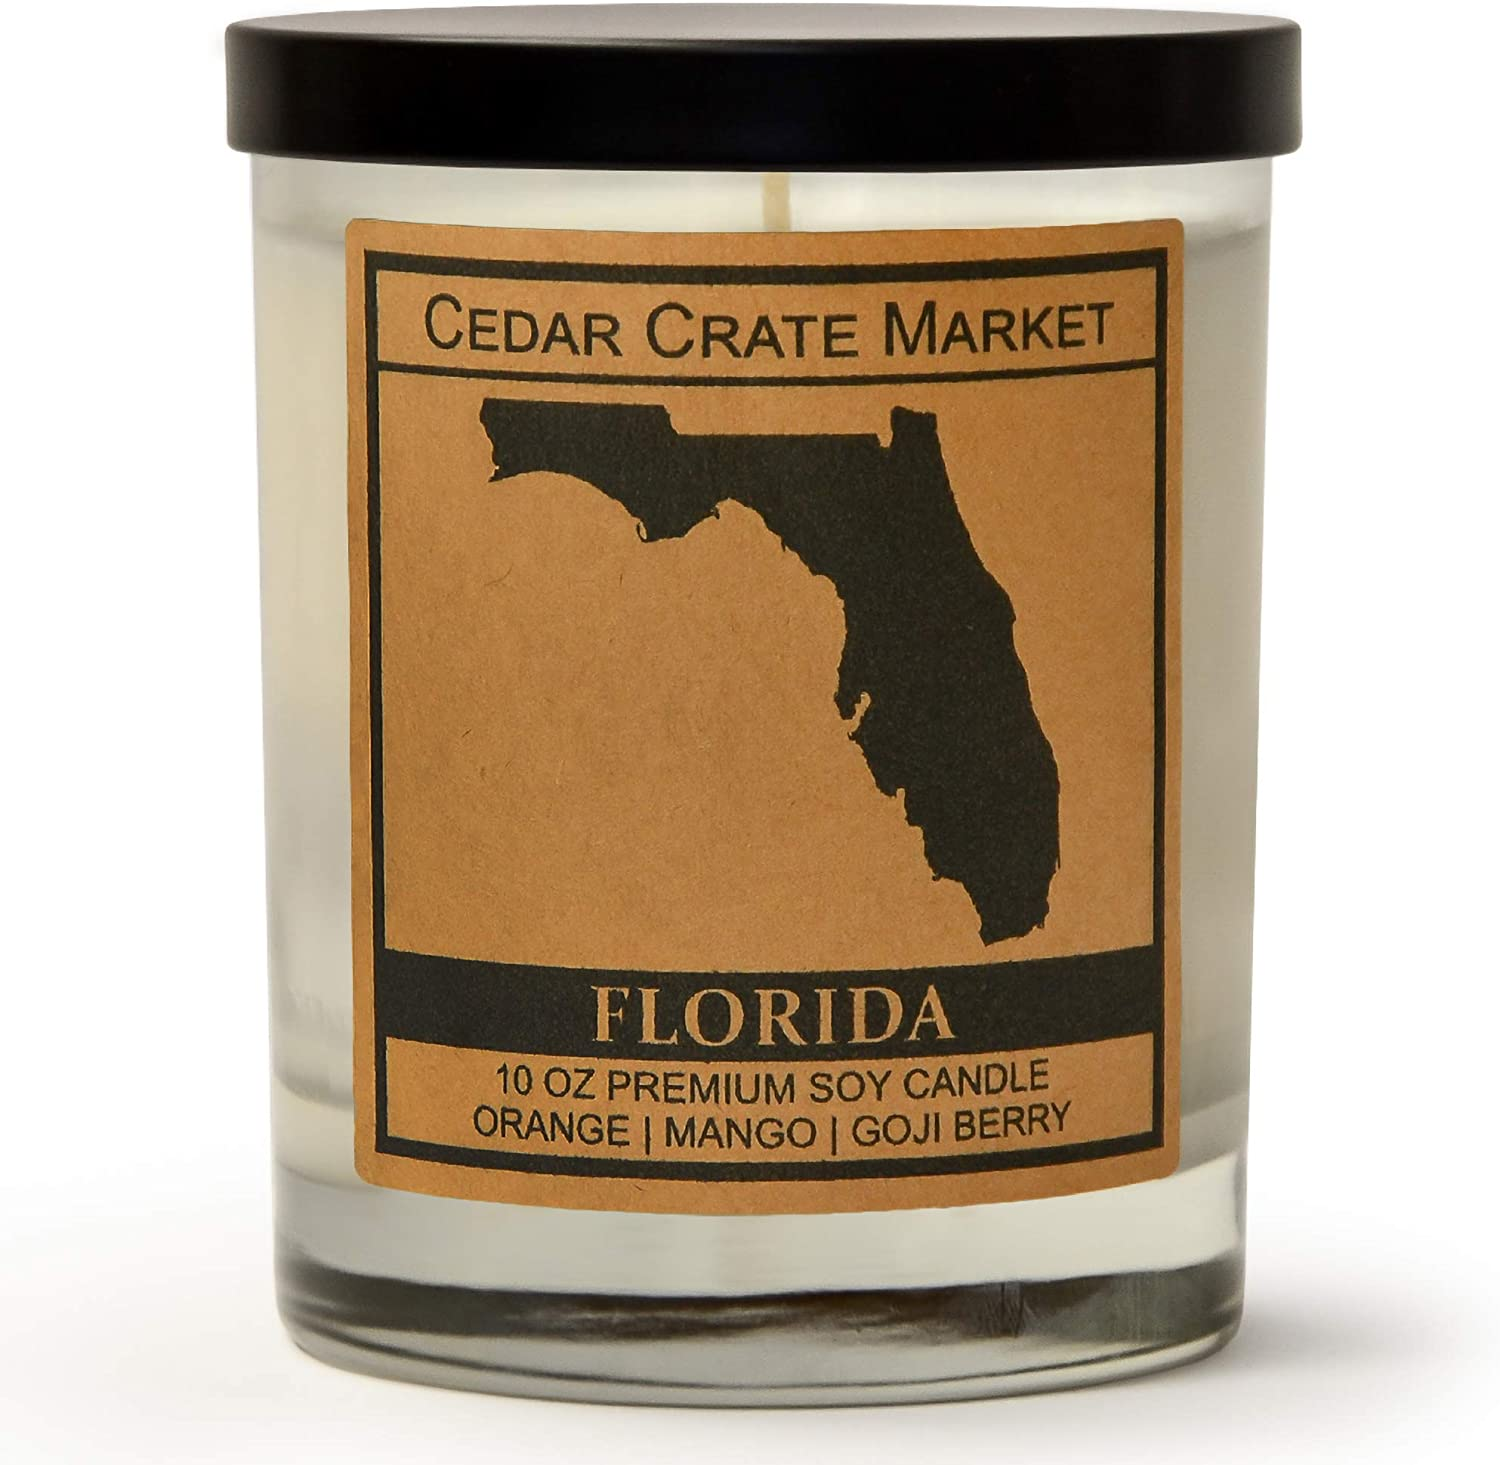 Florida Kraft Label Scented Soy Candle, Orange, Mango, Goji Berry, 10 Oz. Glass Jar Candle, Made in The USA, Decorative Candles, Going Away Gifts for Friends, State Candles